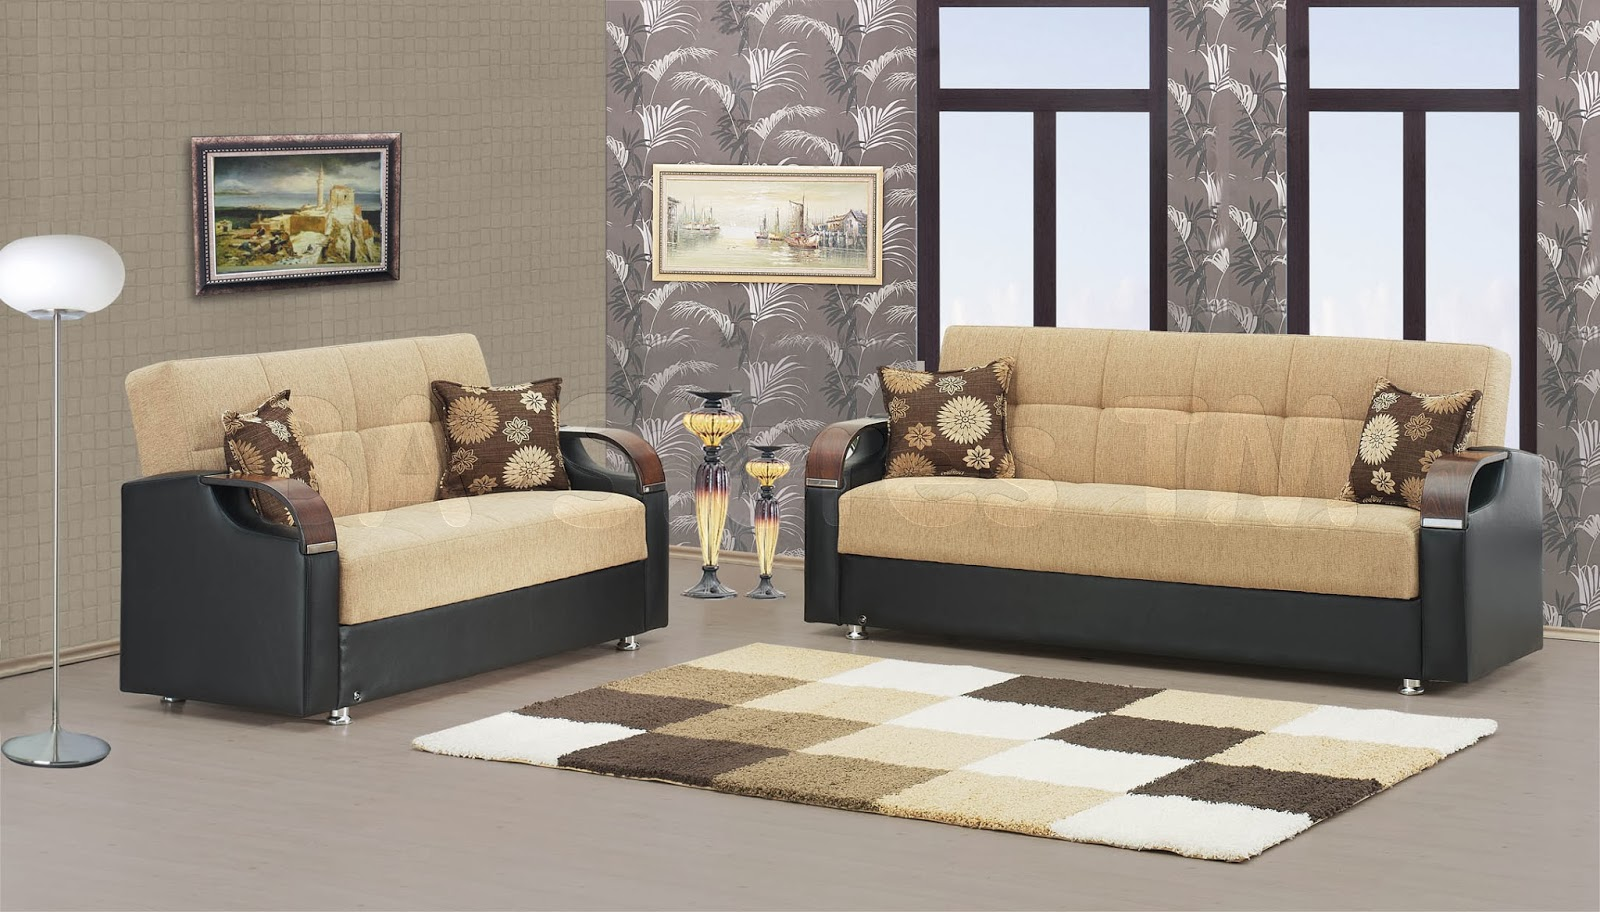 New fashion in sofa set design 2014 for Drawing room furniture